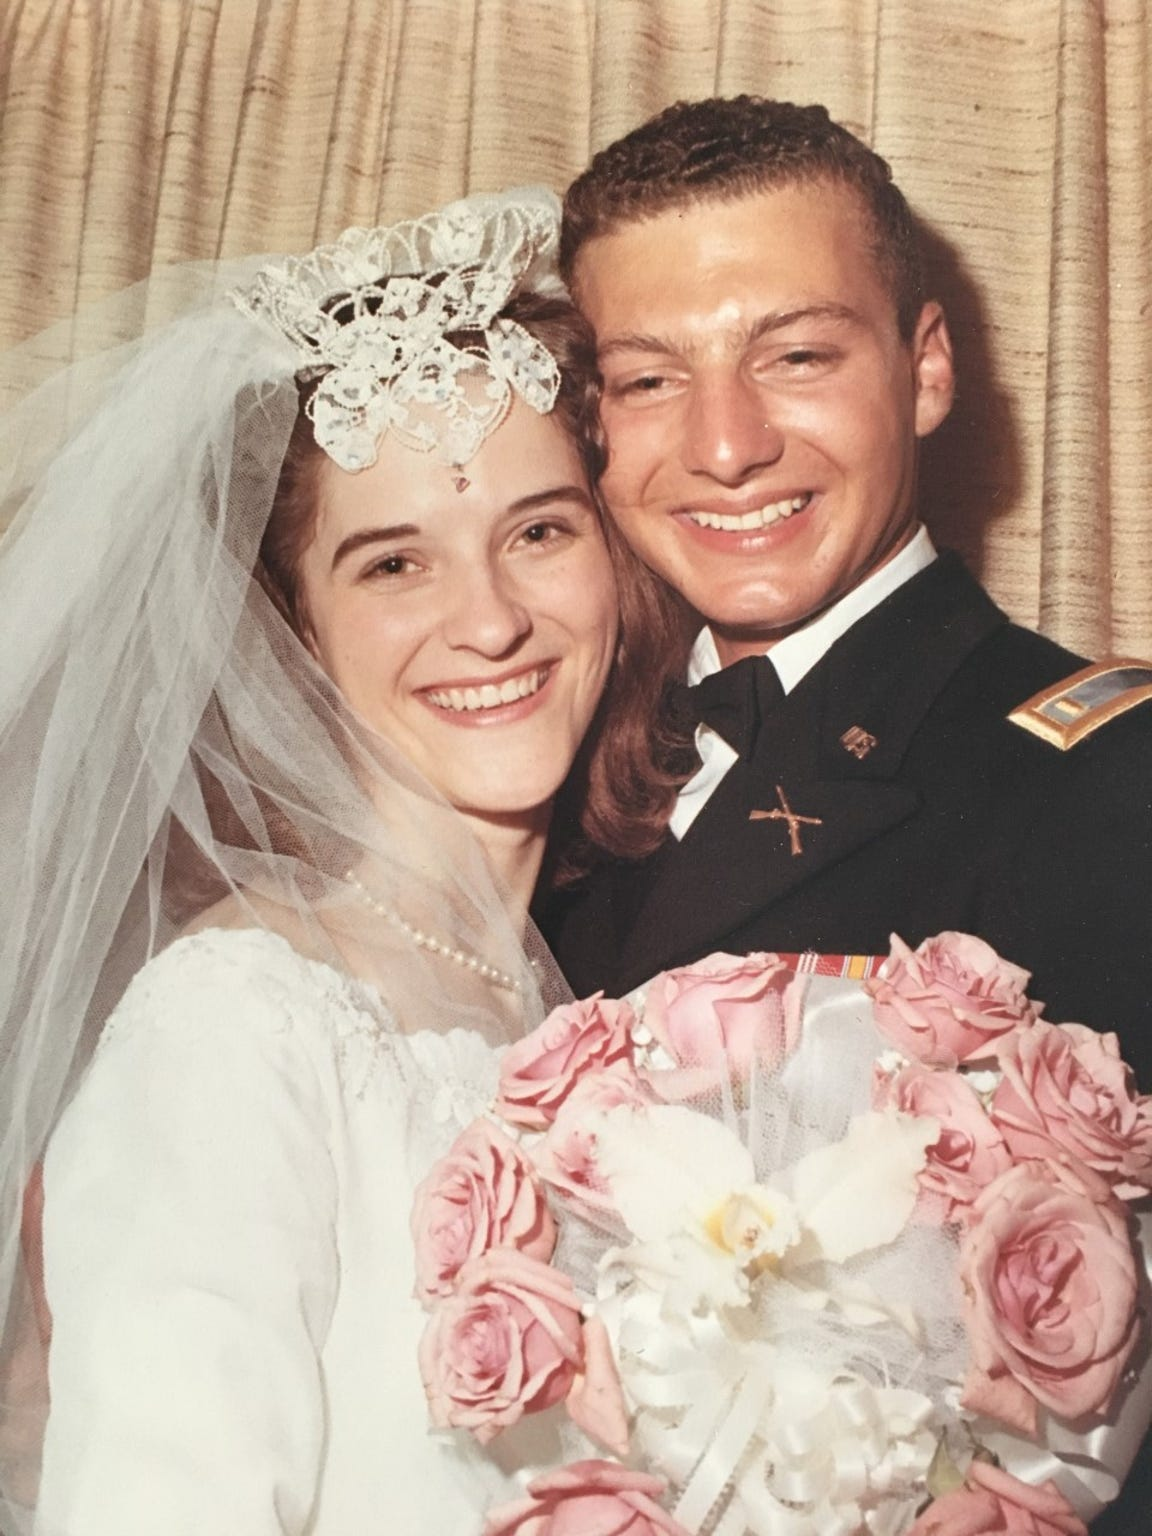 Photo from the wedding of Hattie Ford and her first husband, Deane Taylor, who was killed in Vietnam War.